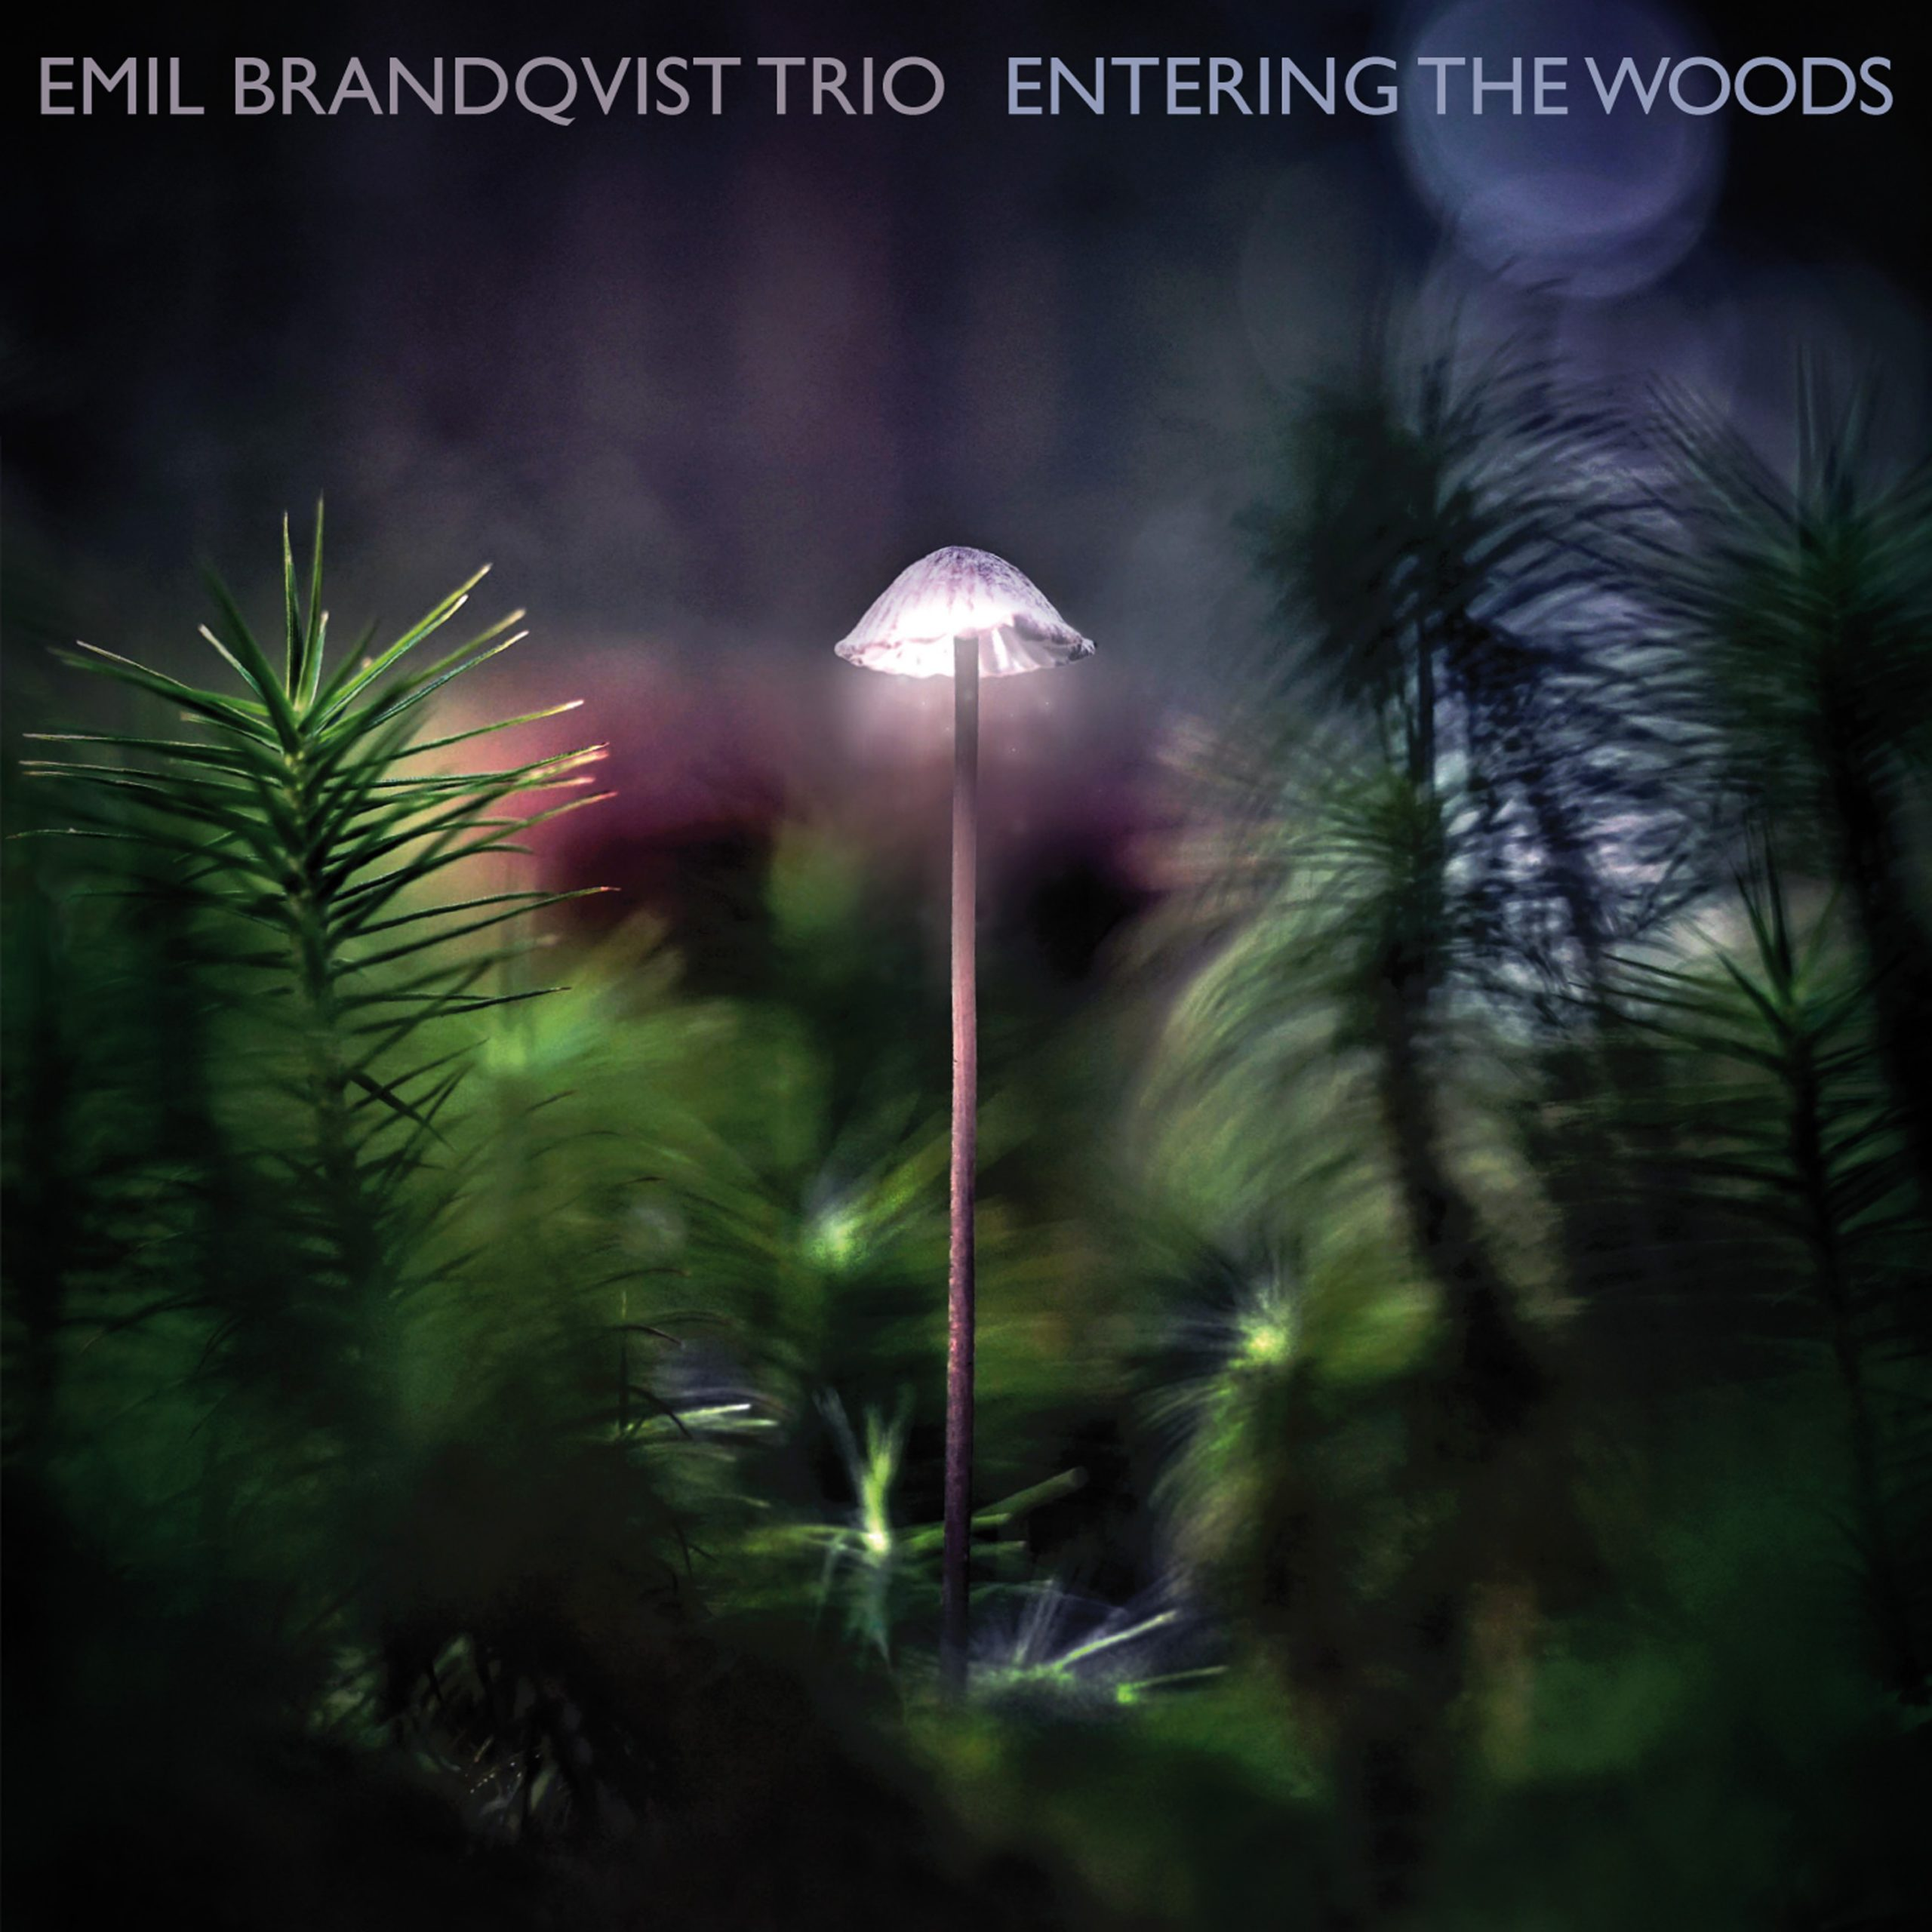 Click and discover Emil Brandqvist Trio's latest release Entering the Woods